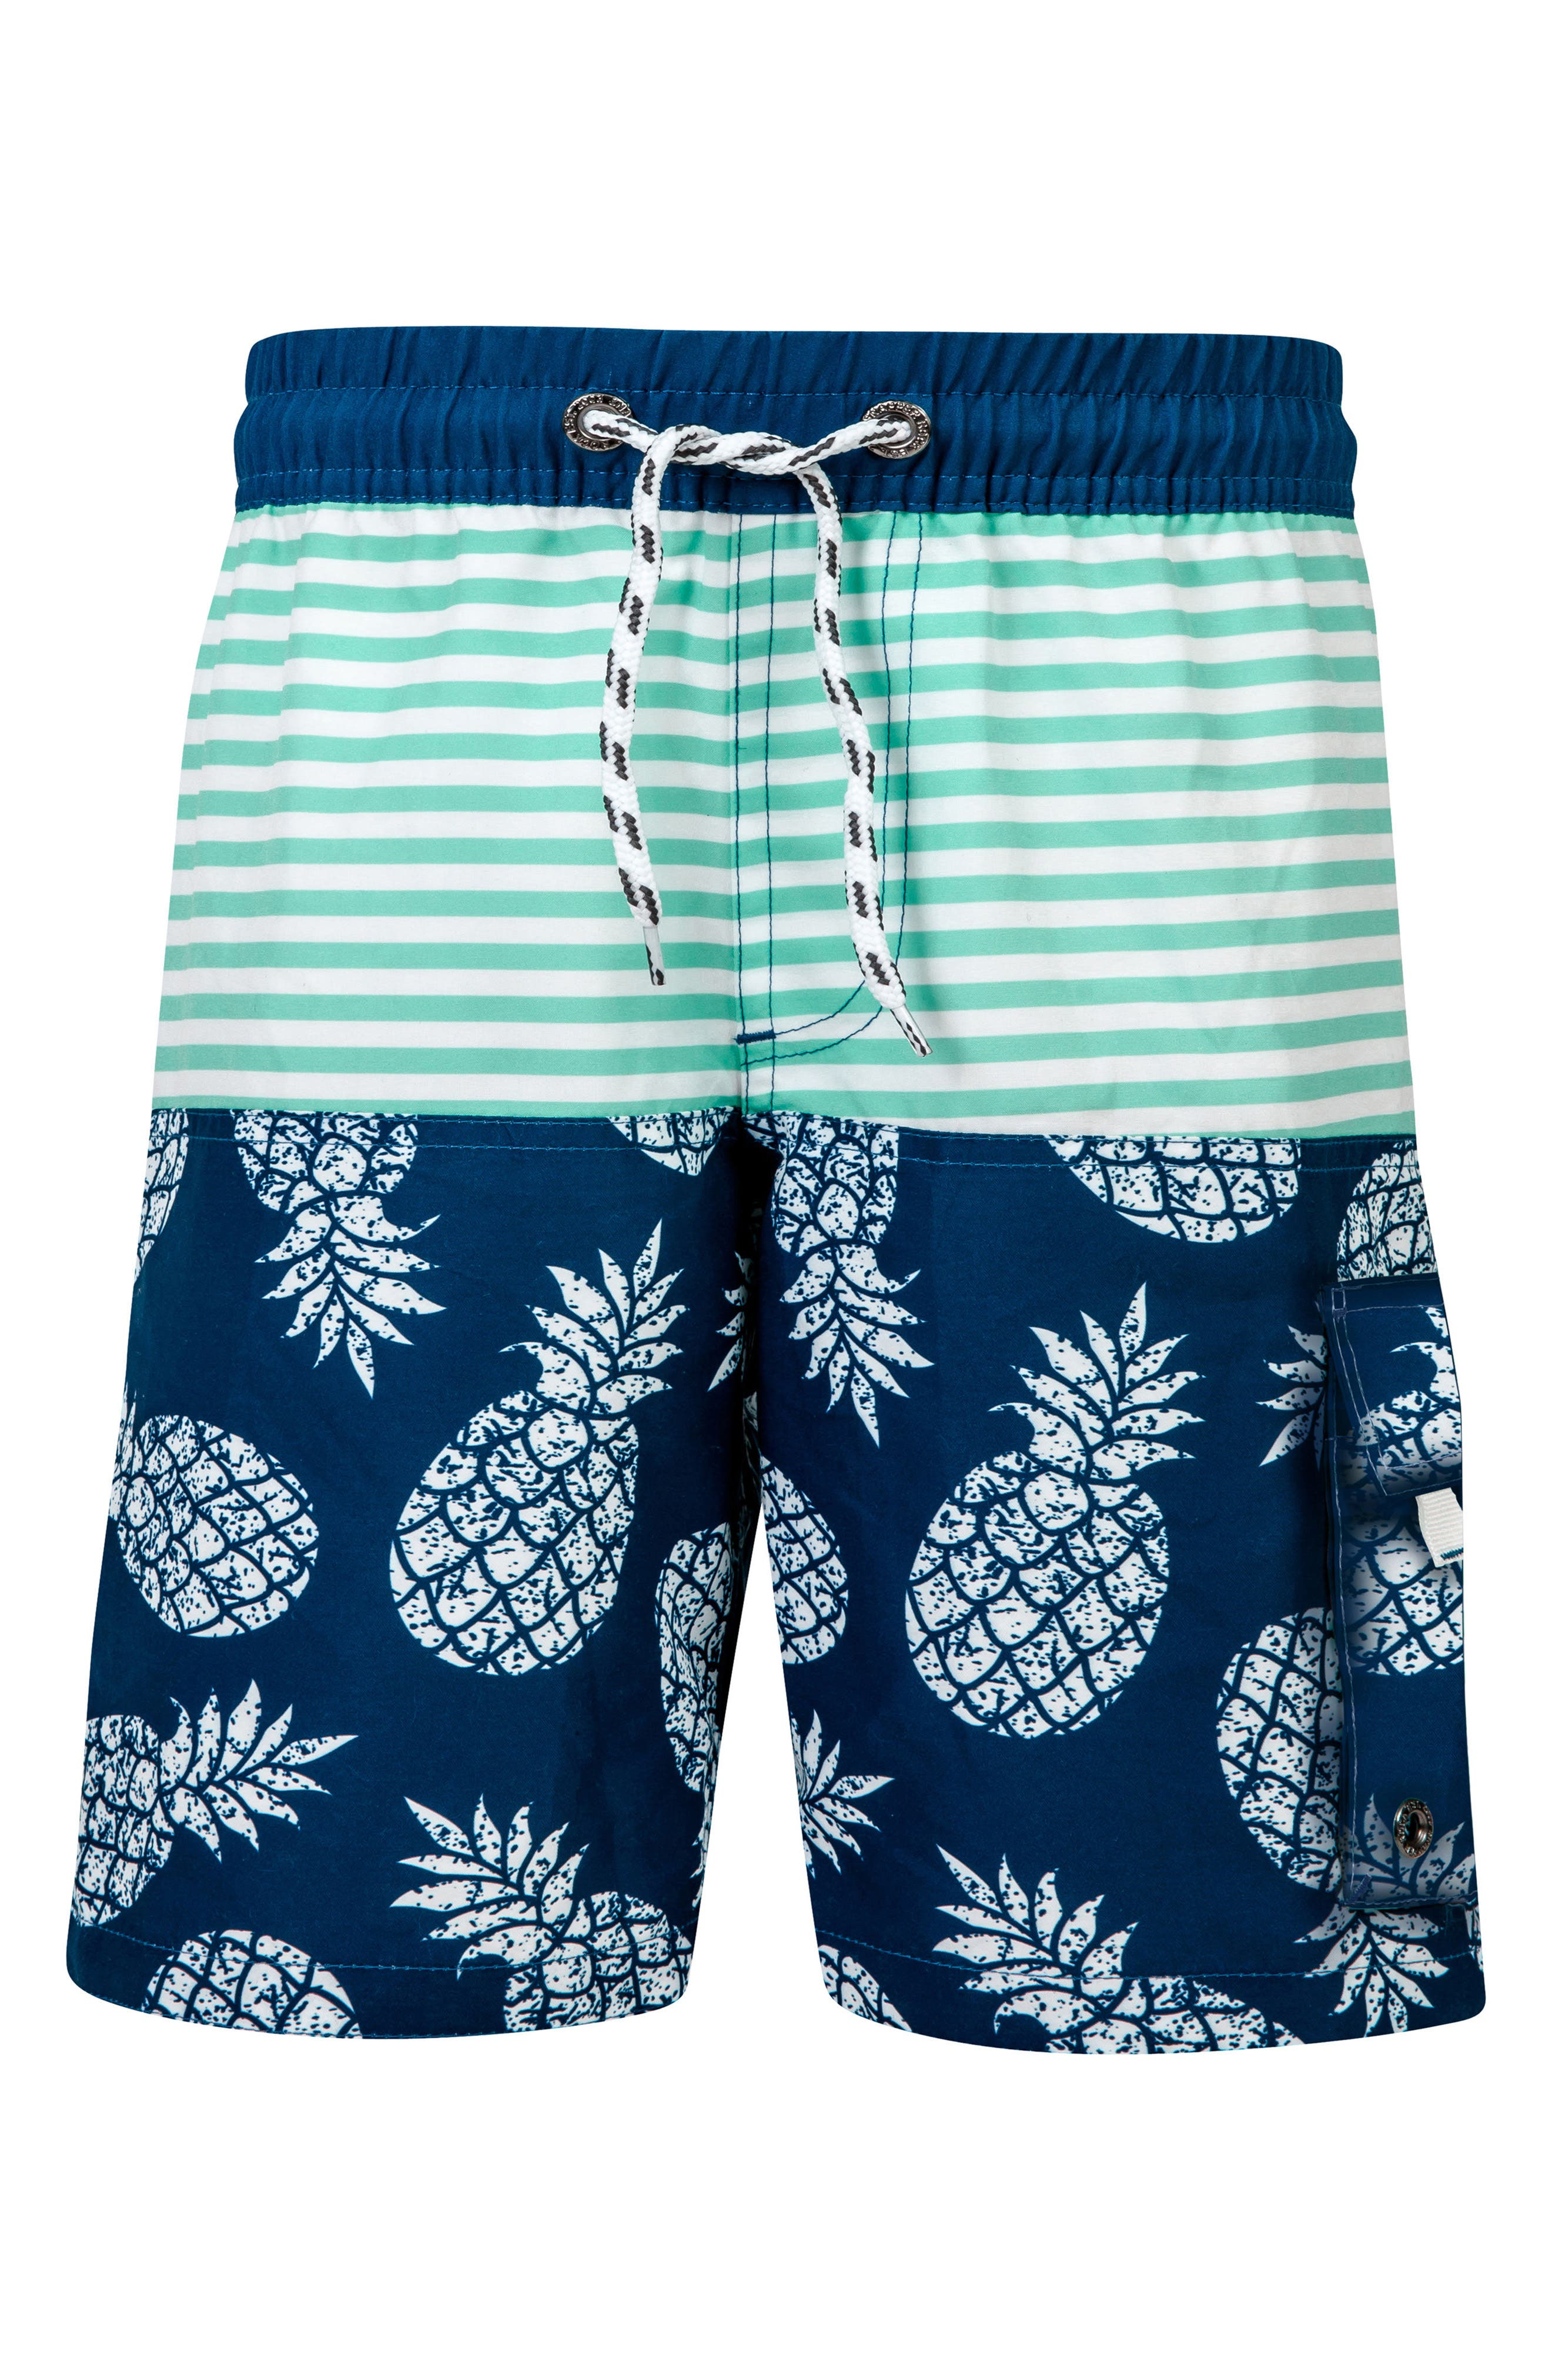 Pineapple Mint Stripe Board Shorts,                         Main,                         color, DENIM/ MINT/ WHITE